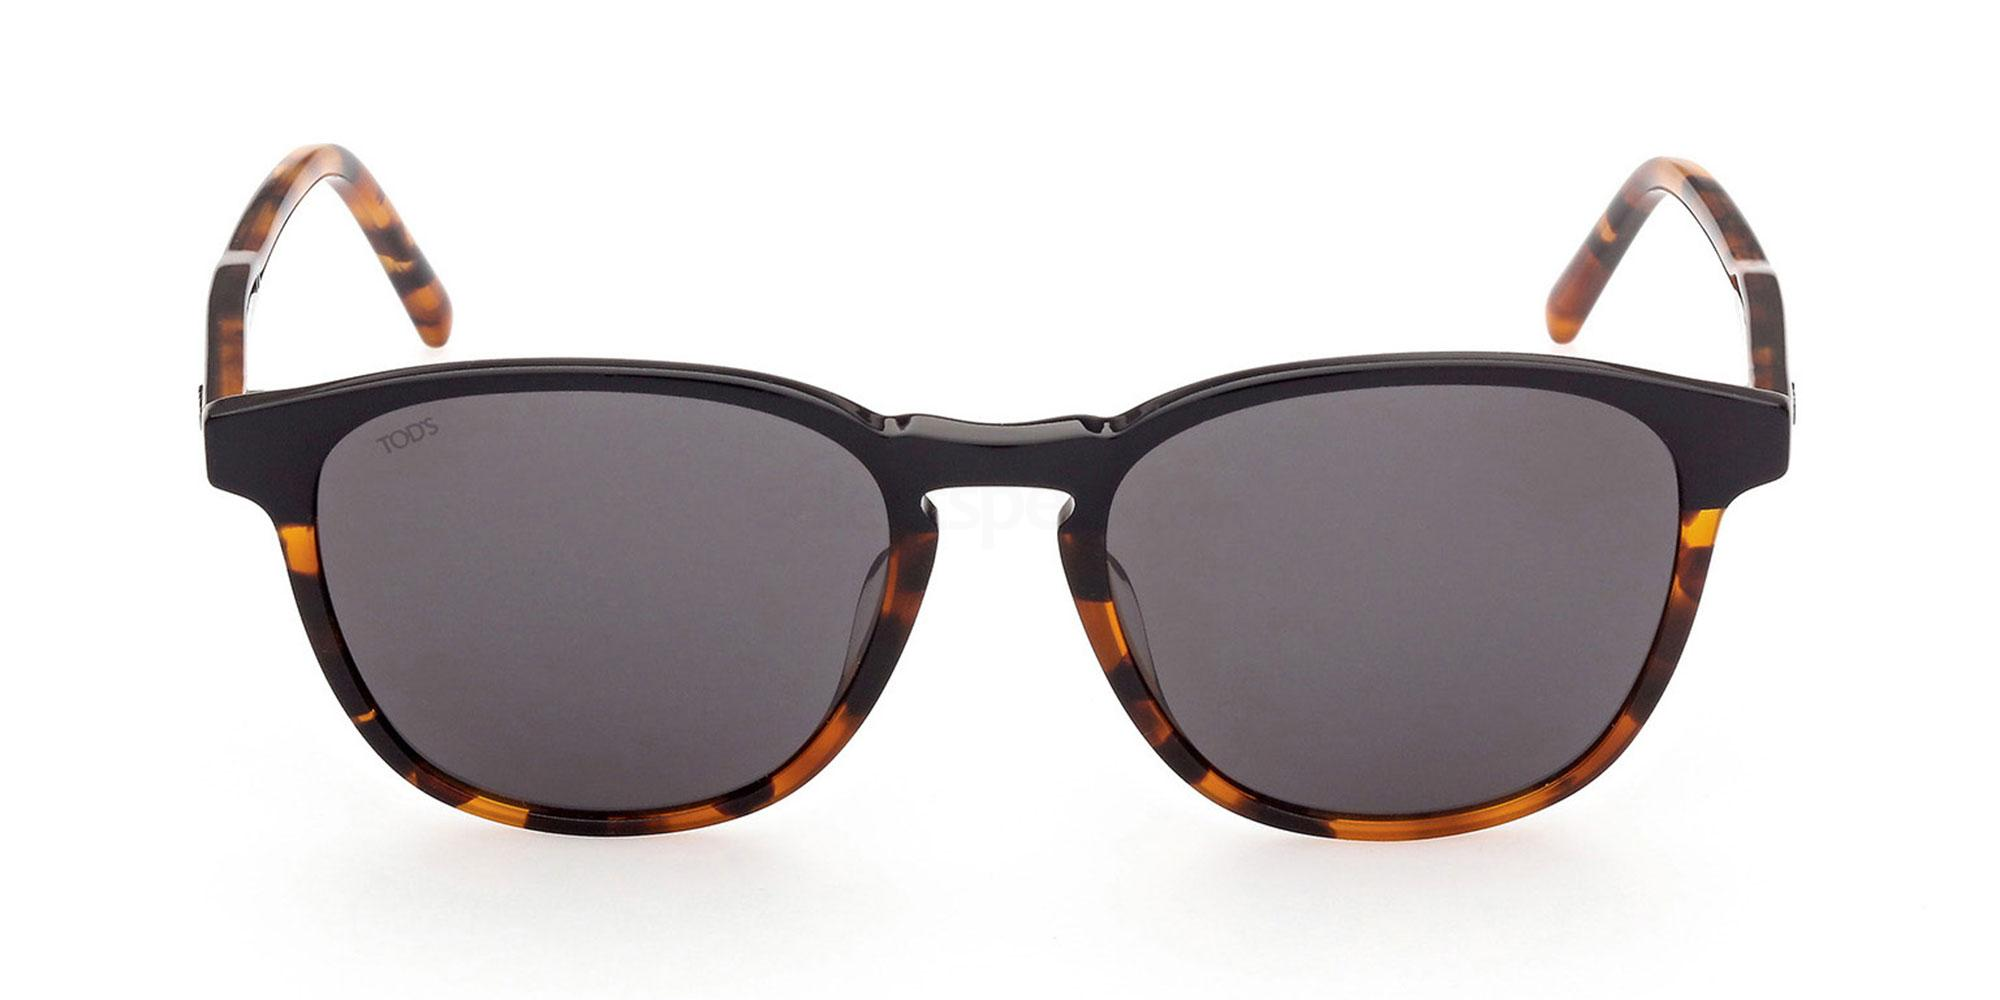 05N TO0280 Sunglasses, TODS